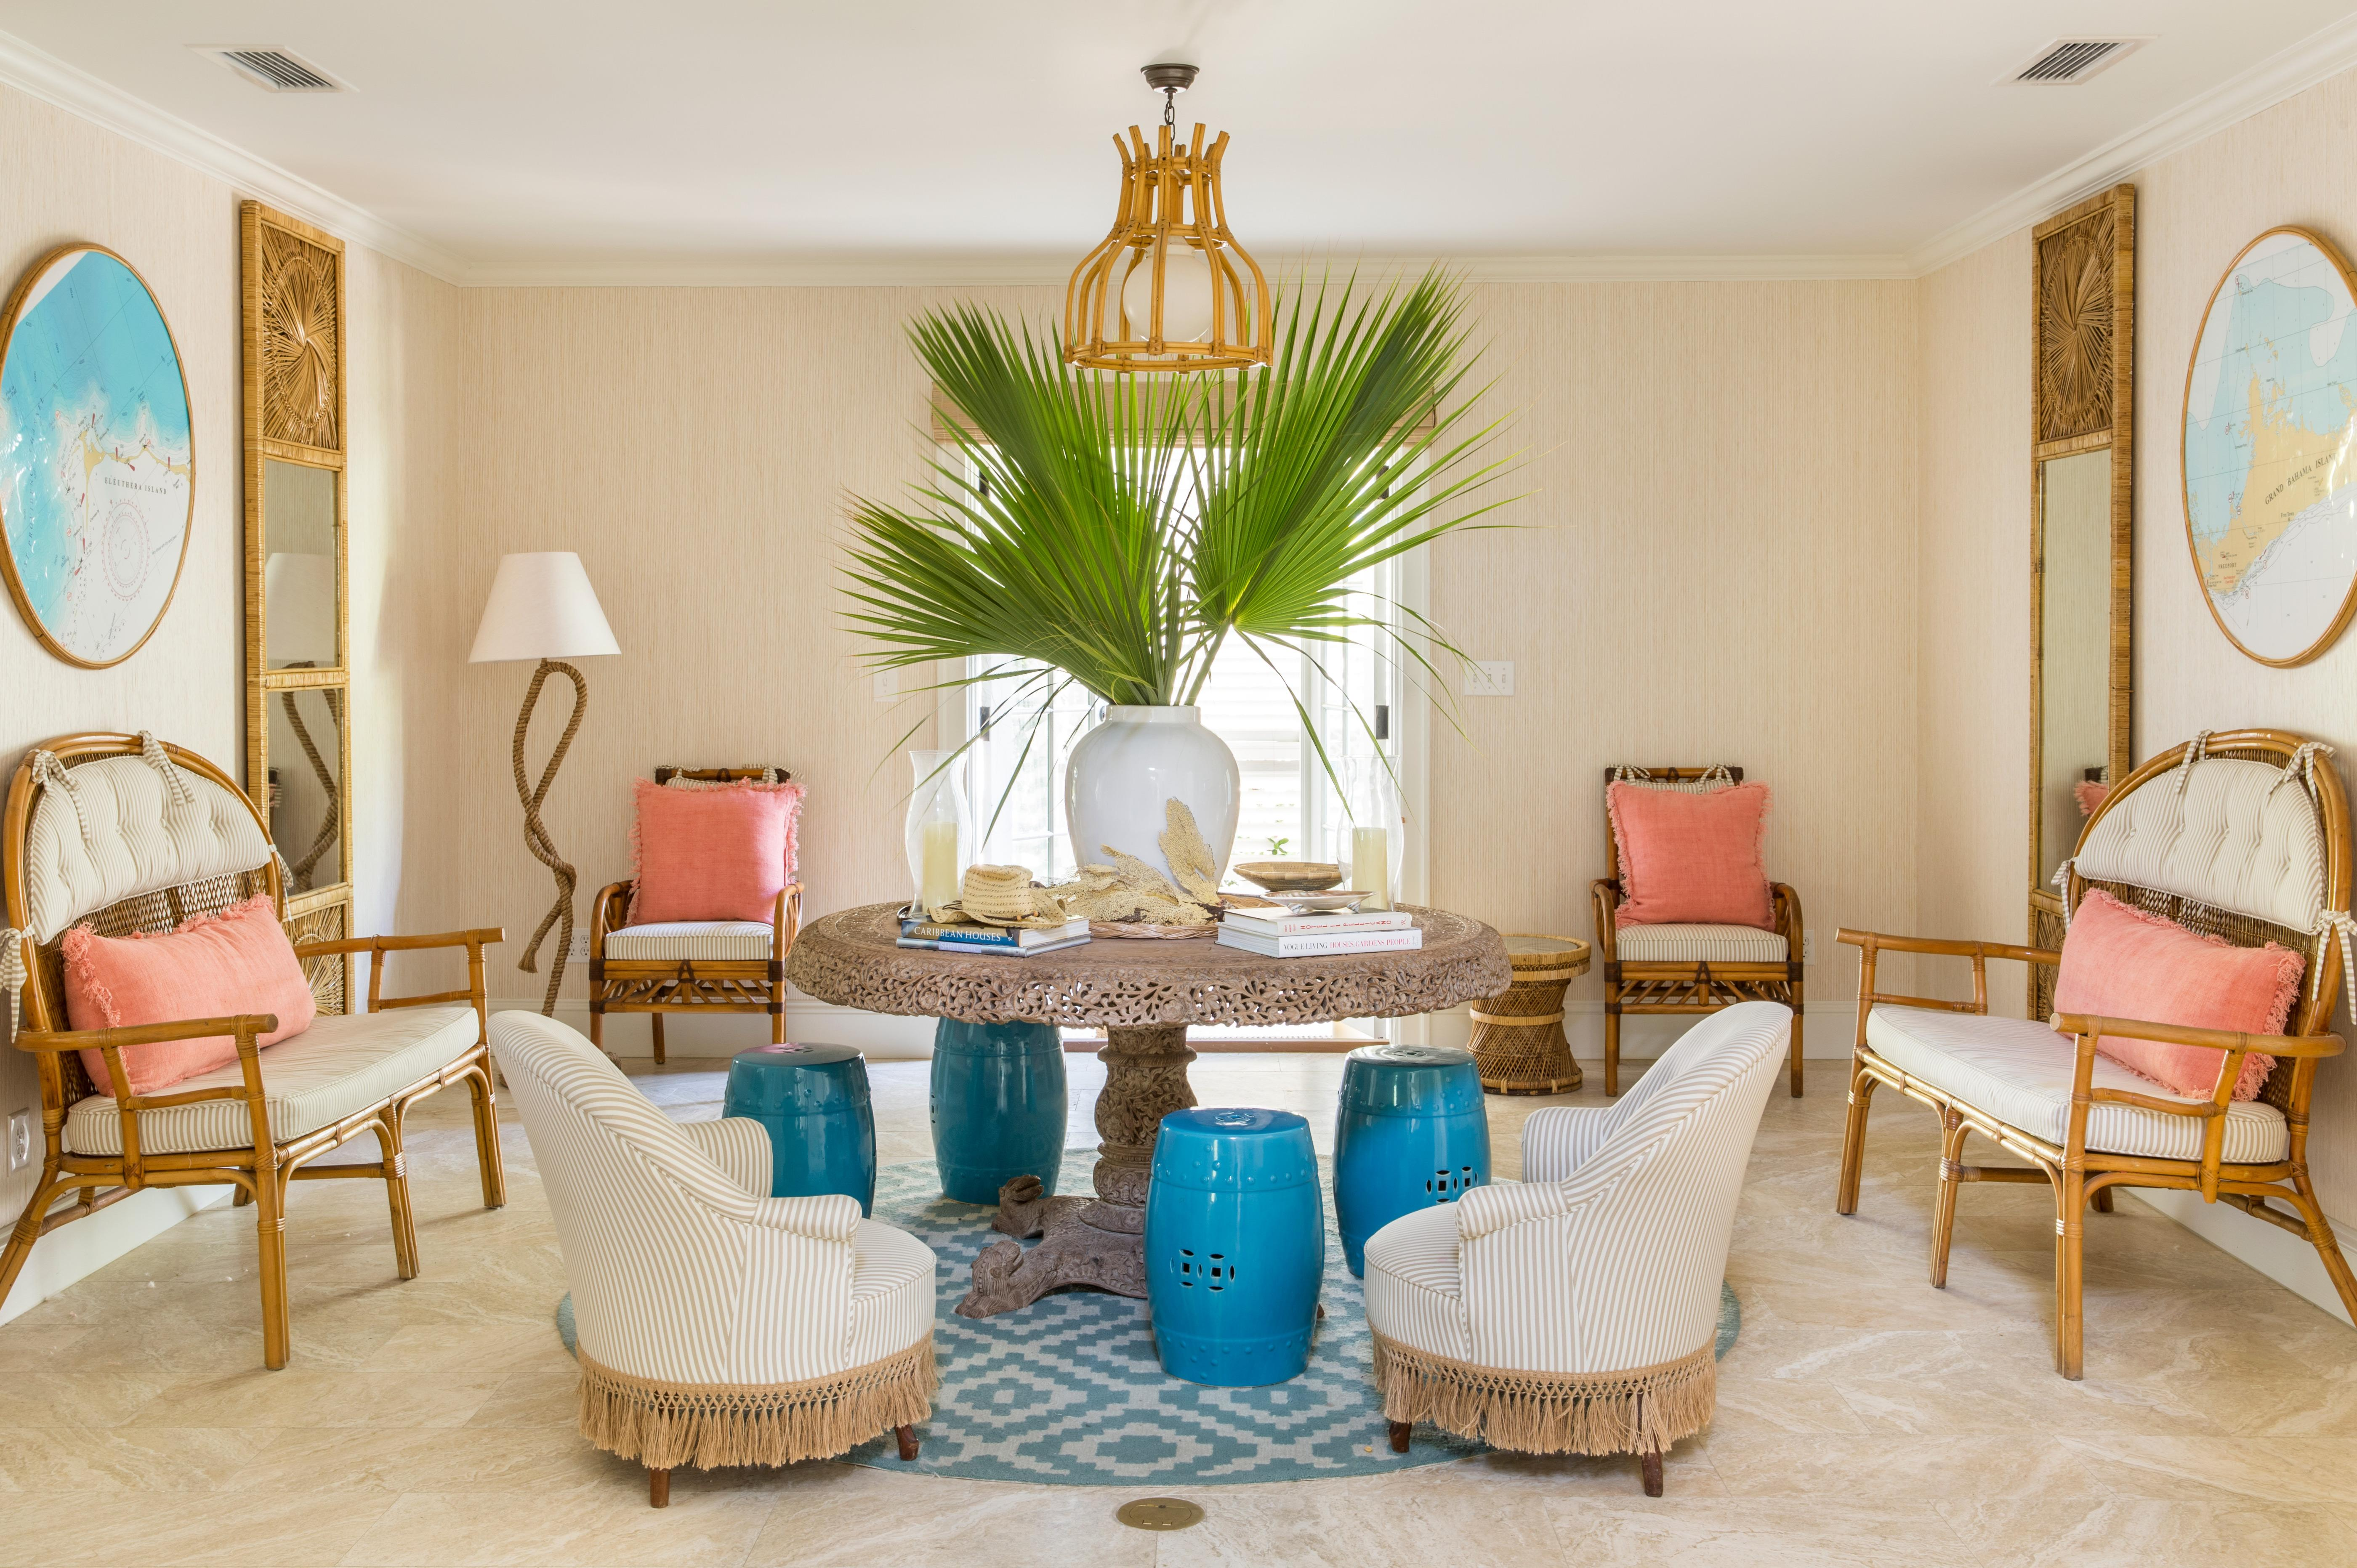 The Best Bamboo and Rattan Furniture for Your Beach House